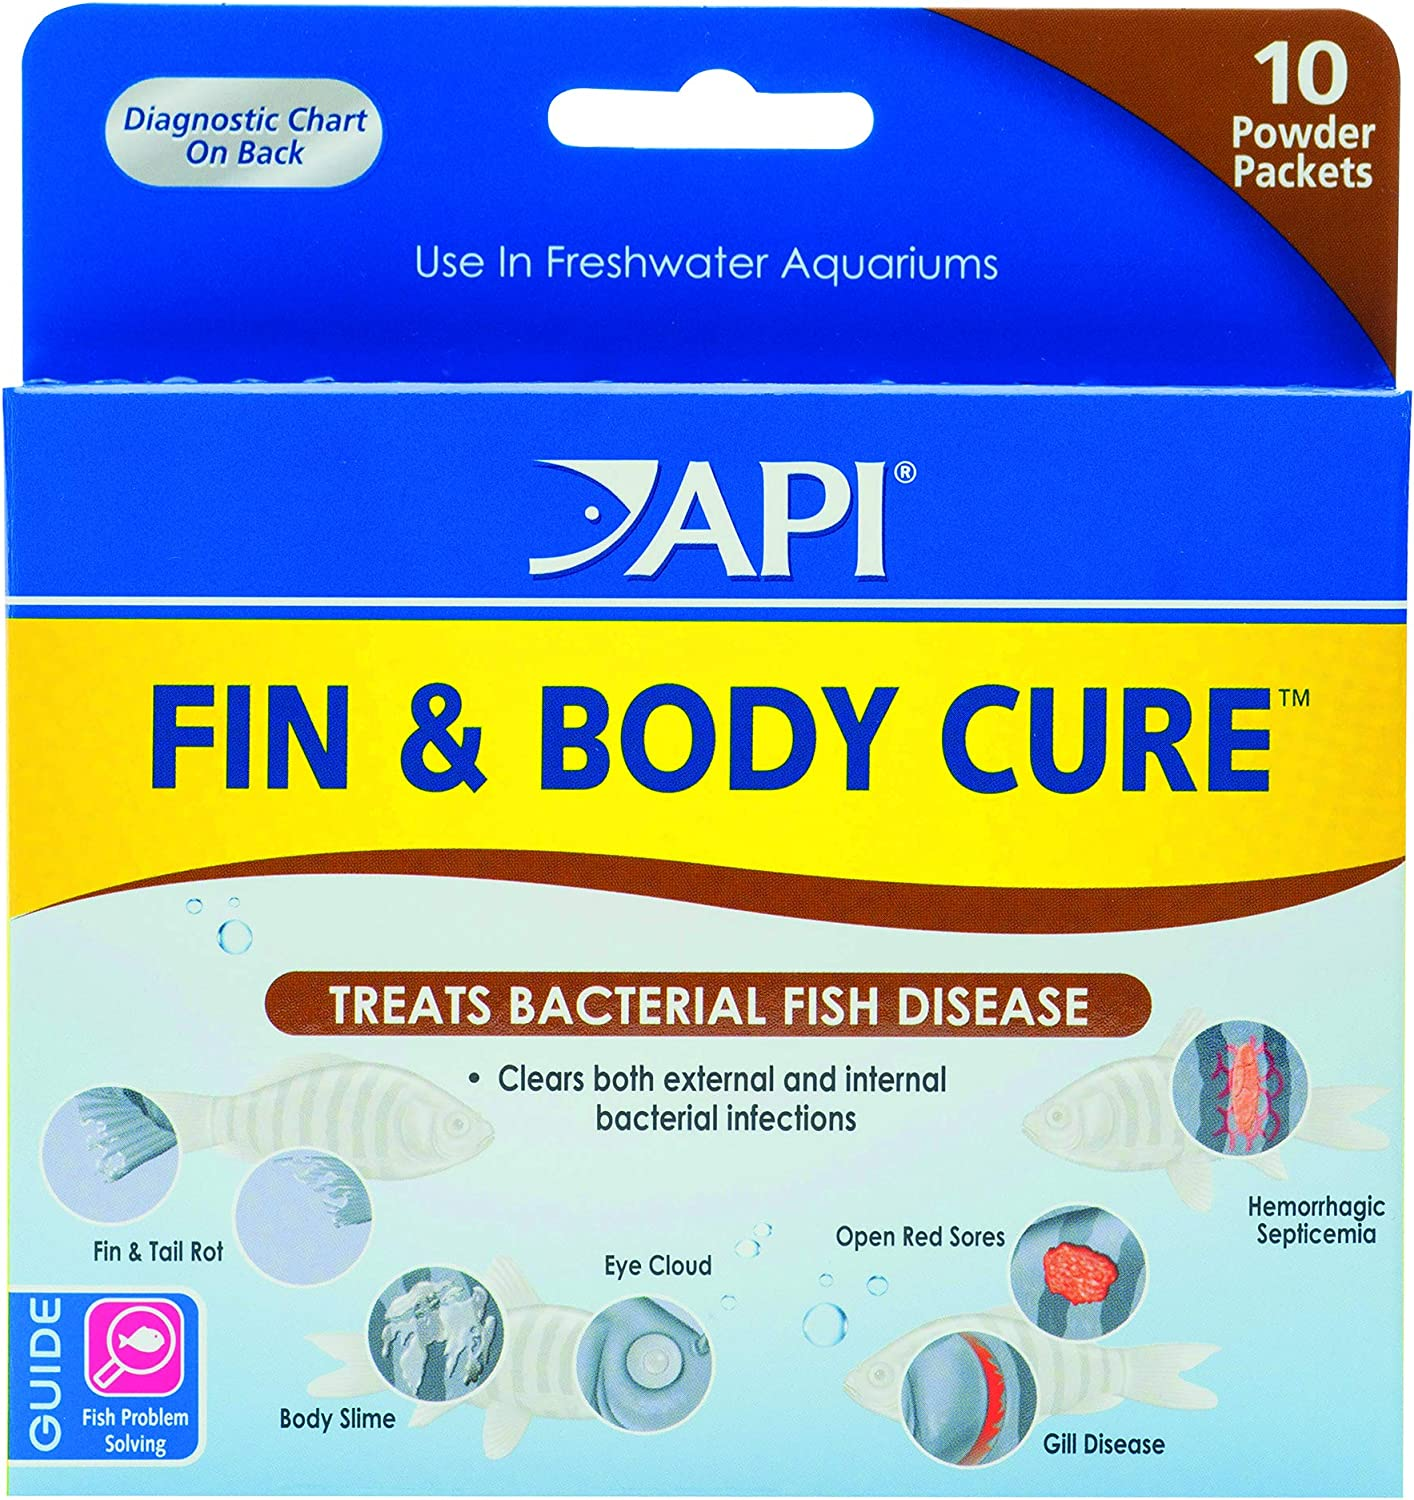 API FIN & BODY CURE Freshwater Fish Powder Medication 10-Count Box